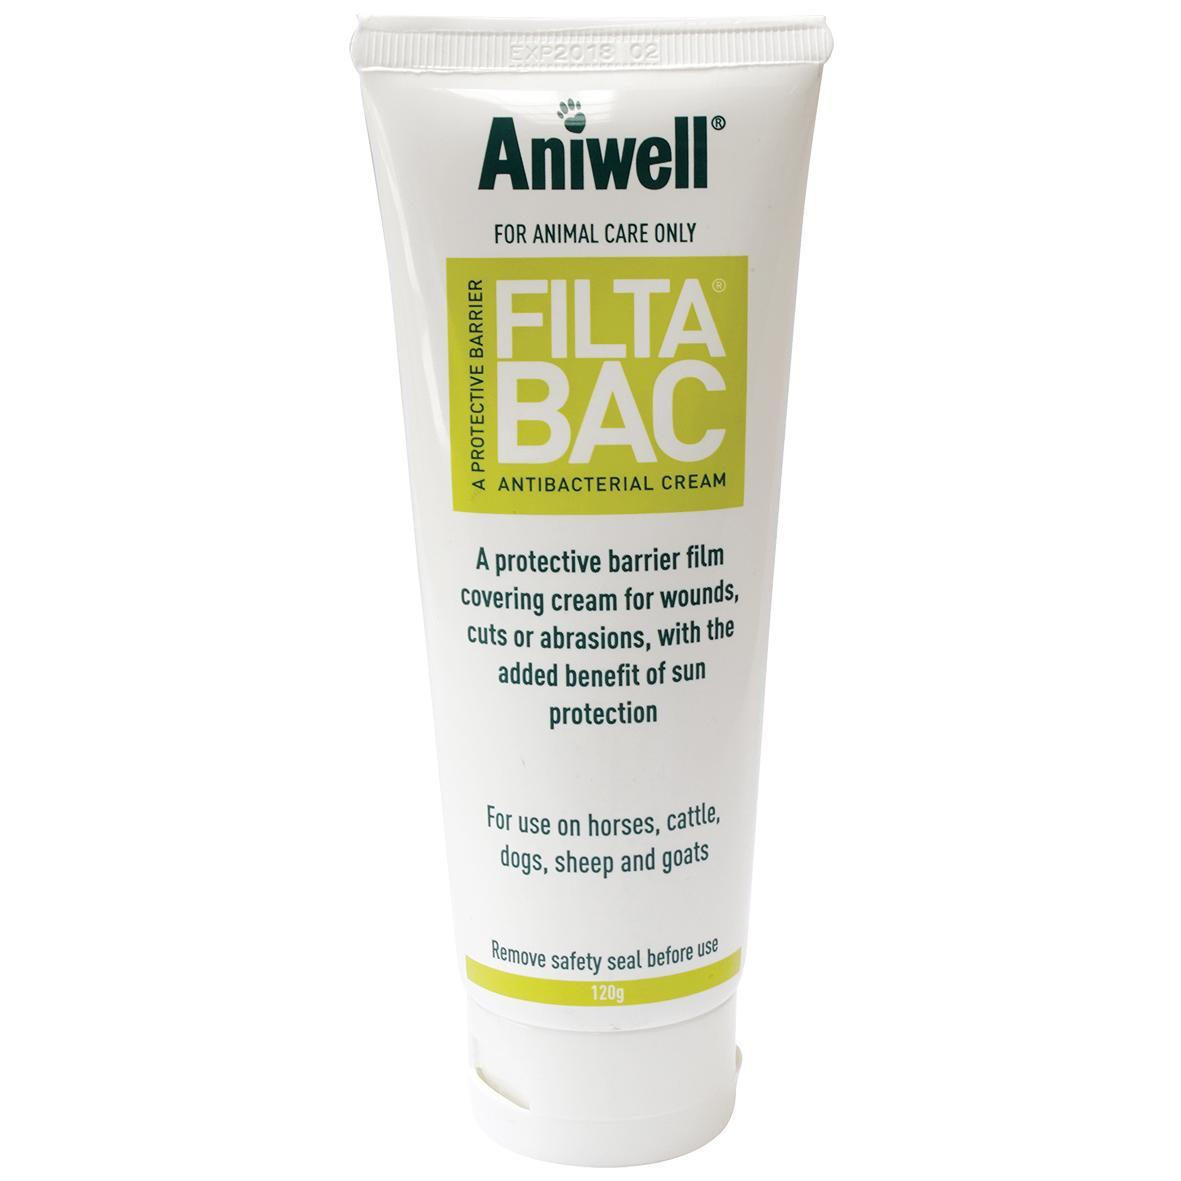 ANIWELL Aniwell Filta Bac Antibacterial Cream 120g